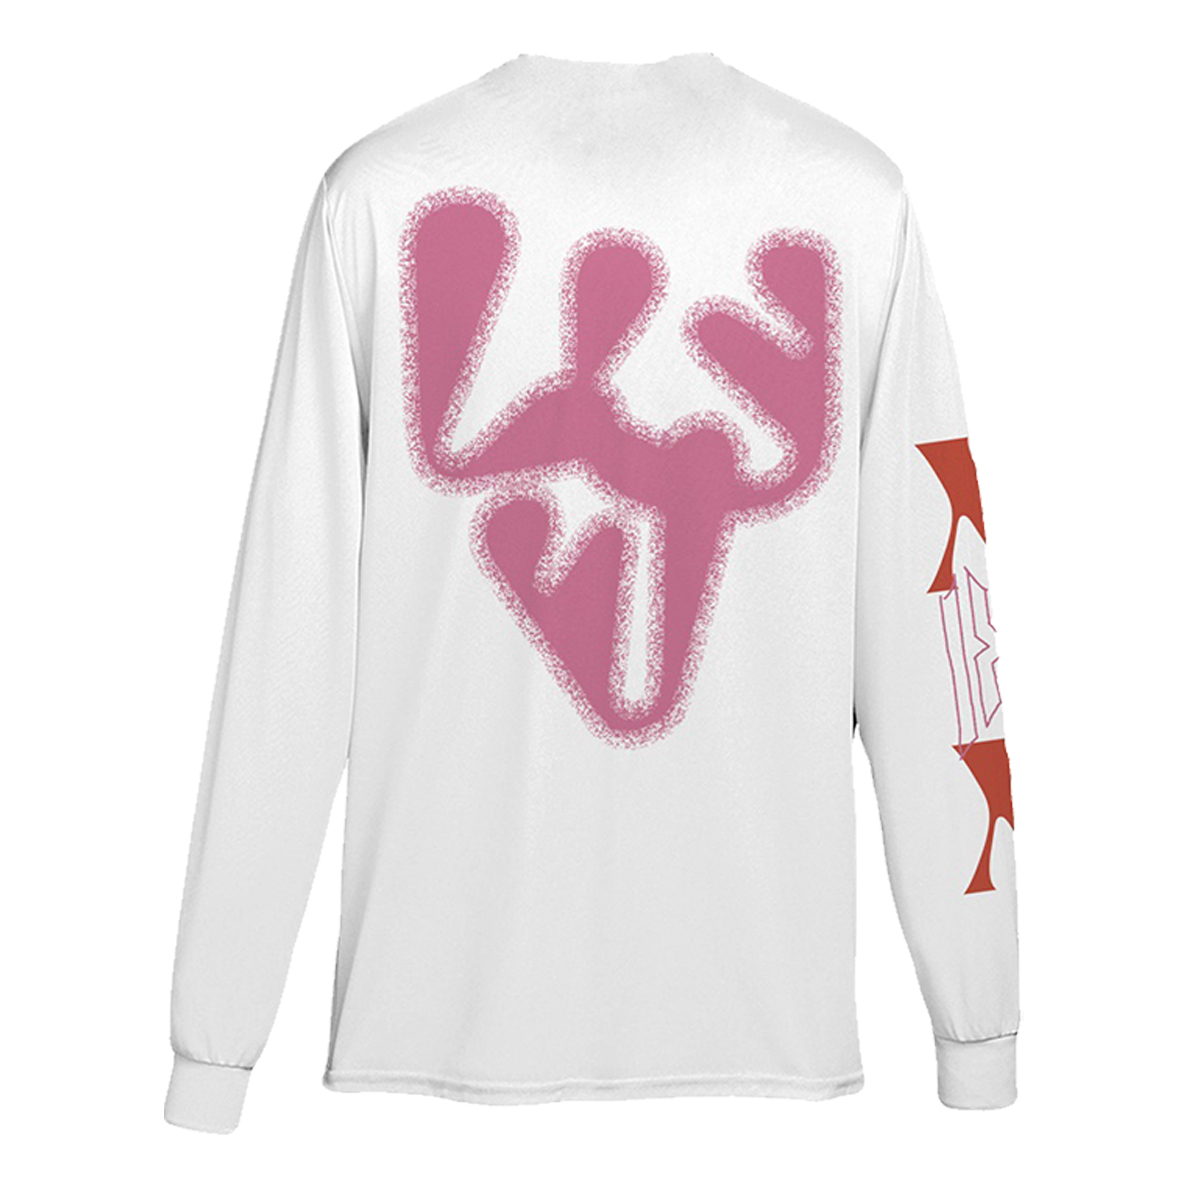 All About Luv Long-Sleeve T-Shirt + Digital Album Download